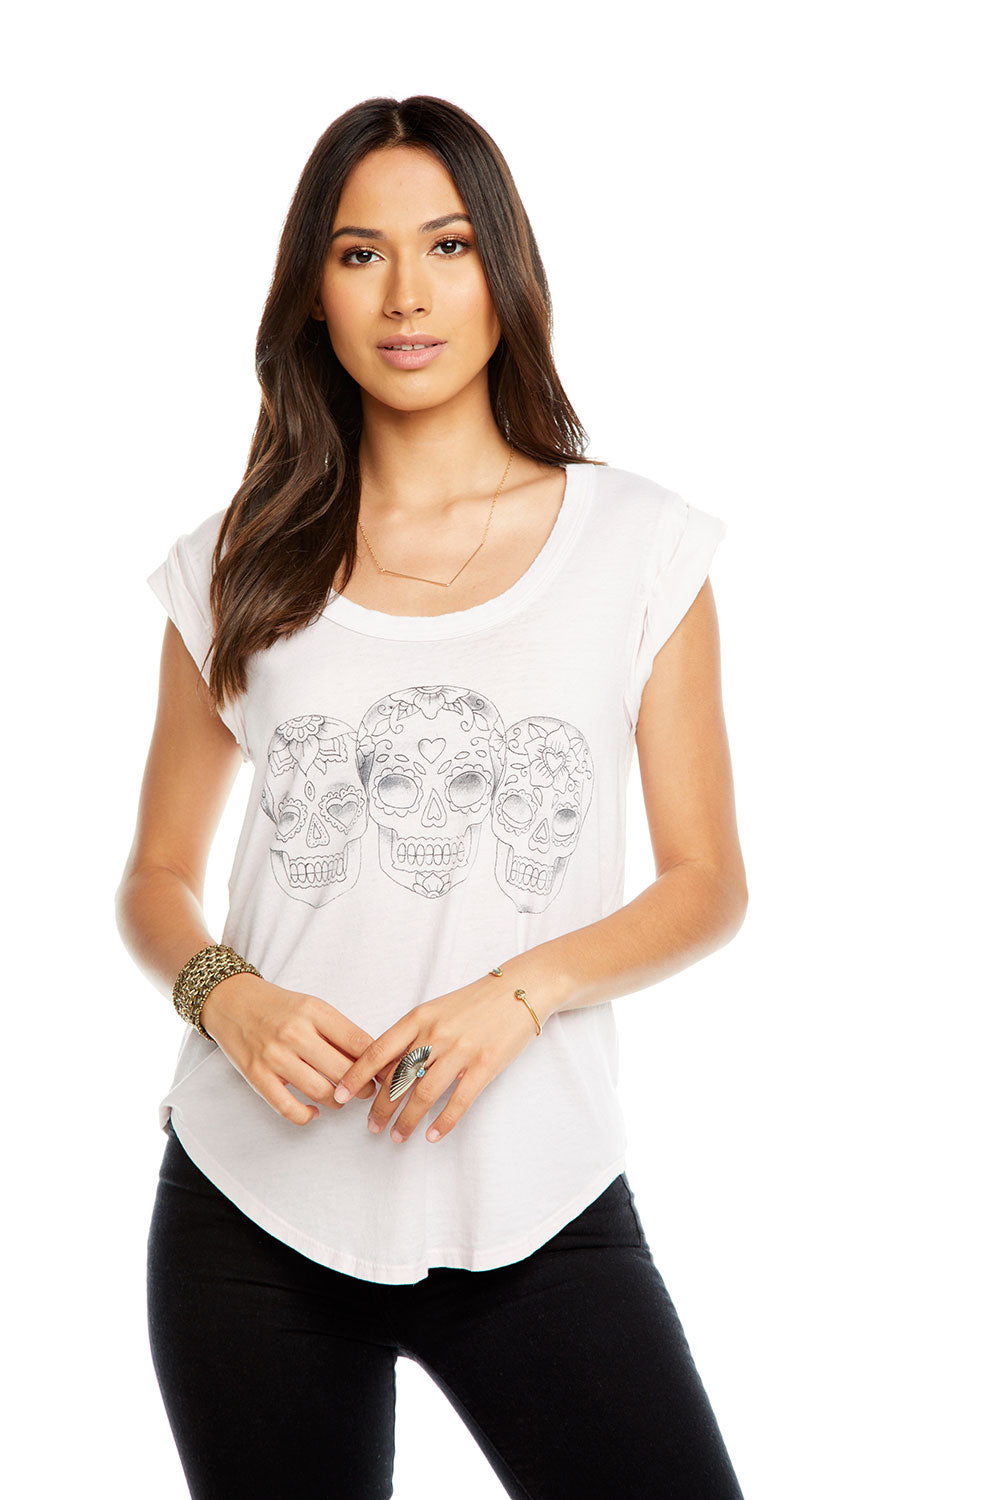 HAND DRAWN CALAVERAS, WOMENS, chaserbrand.com,chaser clothing,chaser apparel,chaser los angeles